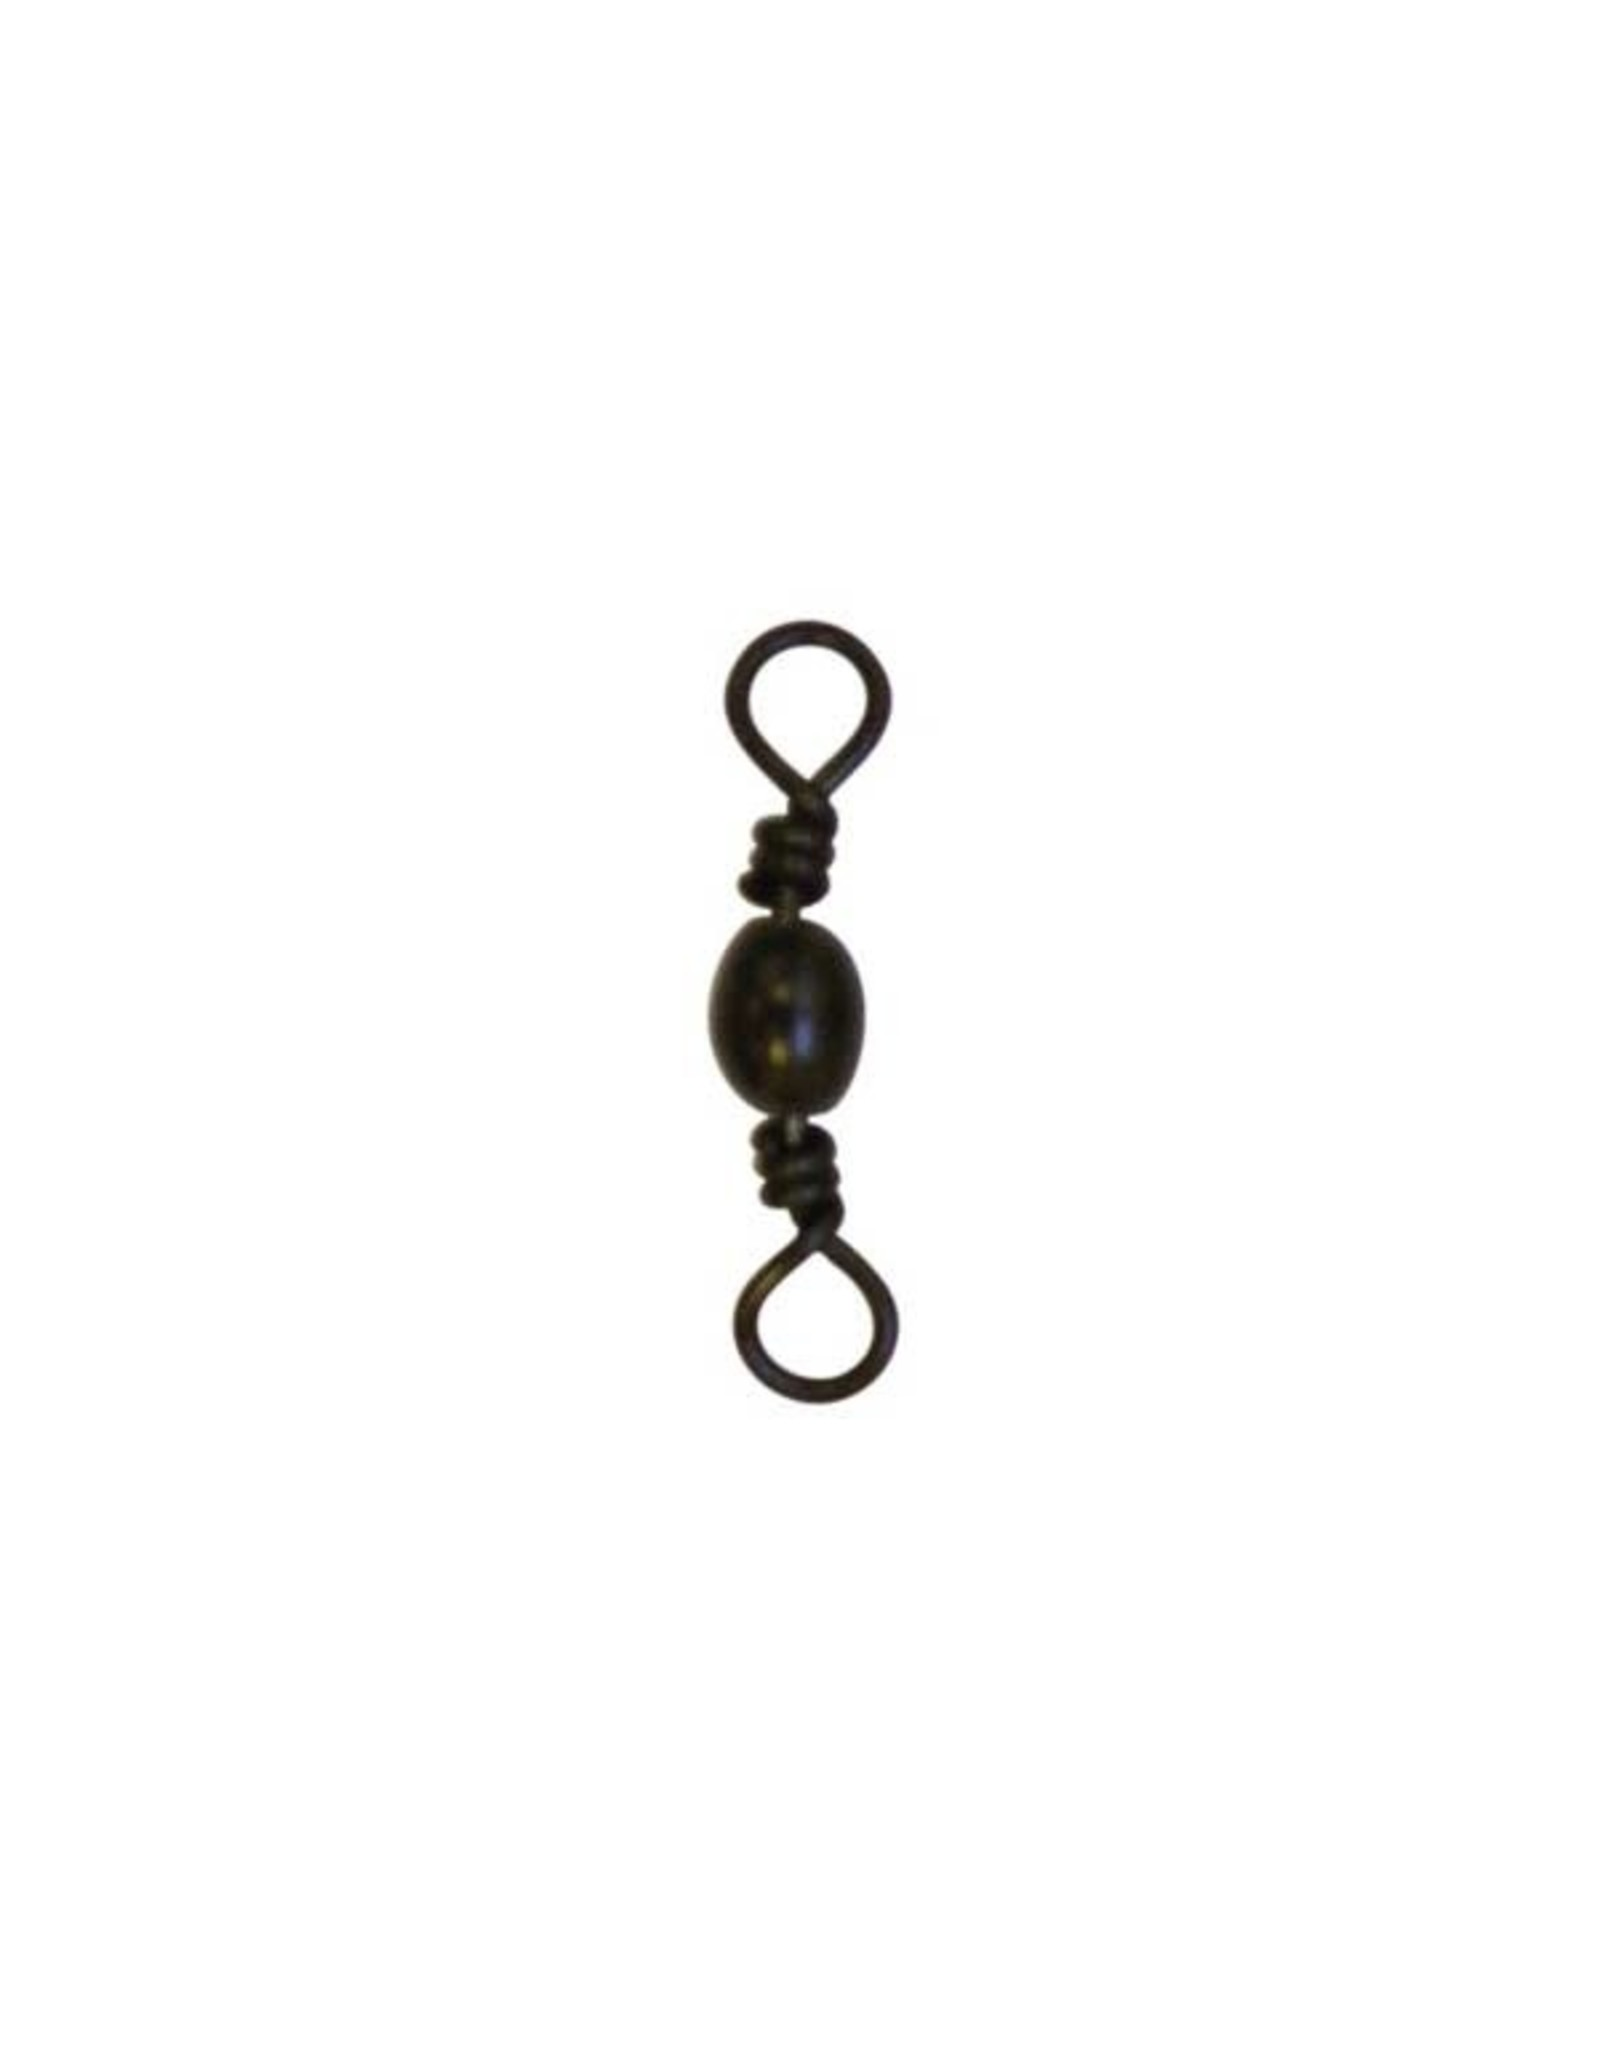 Eagle Claw Eagle Claw Barrel Swivel - Size 7 - 7 Count